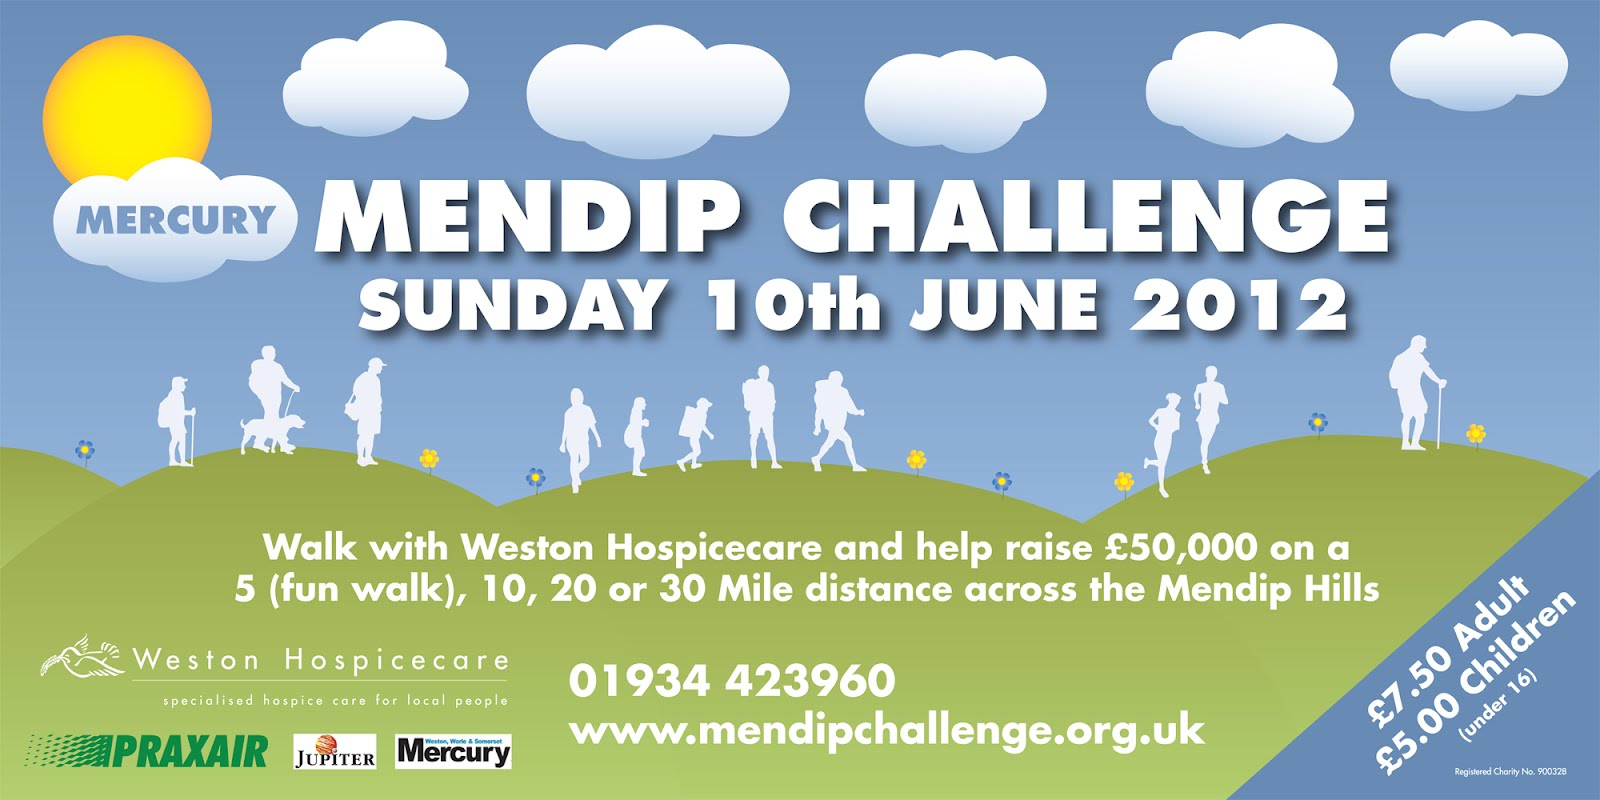 Mercury Mendip Challenge Training Blog